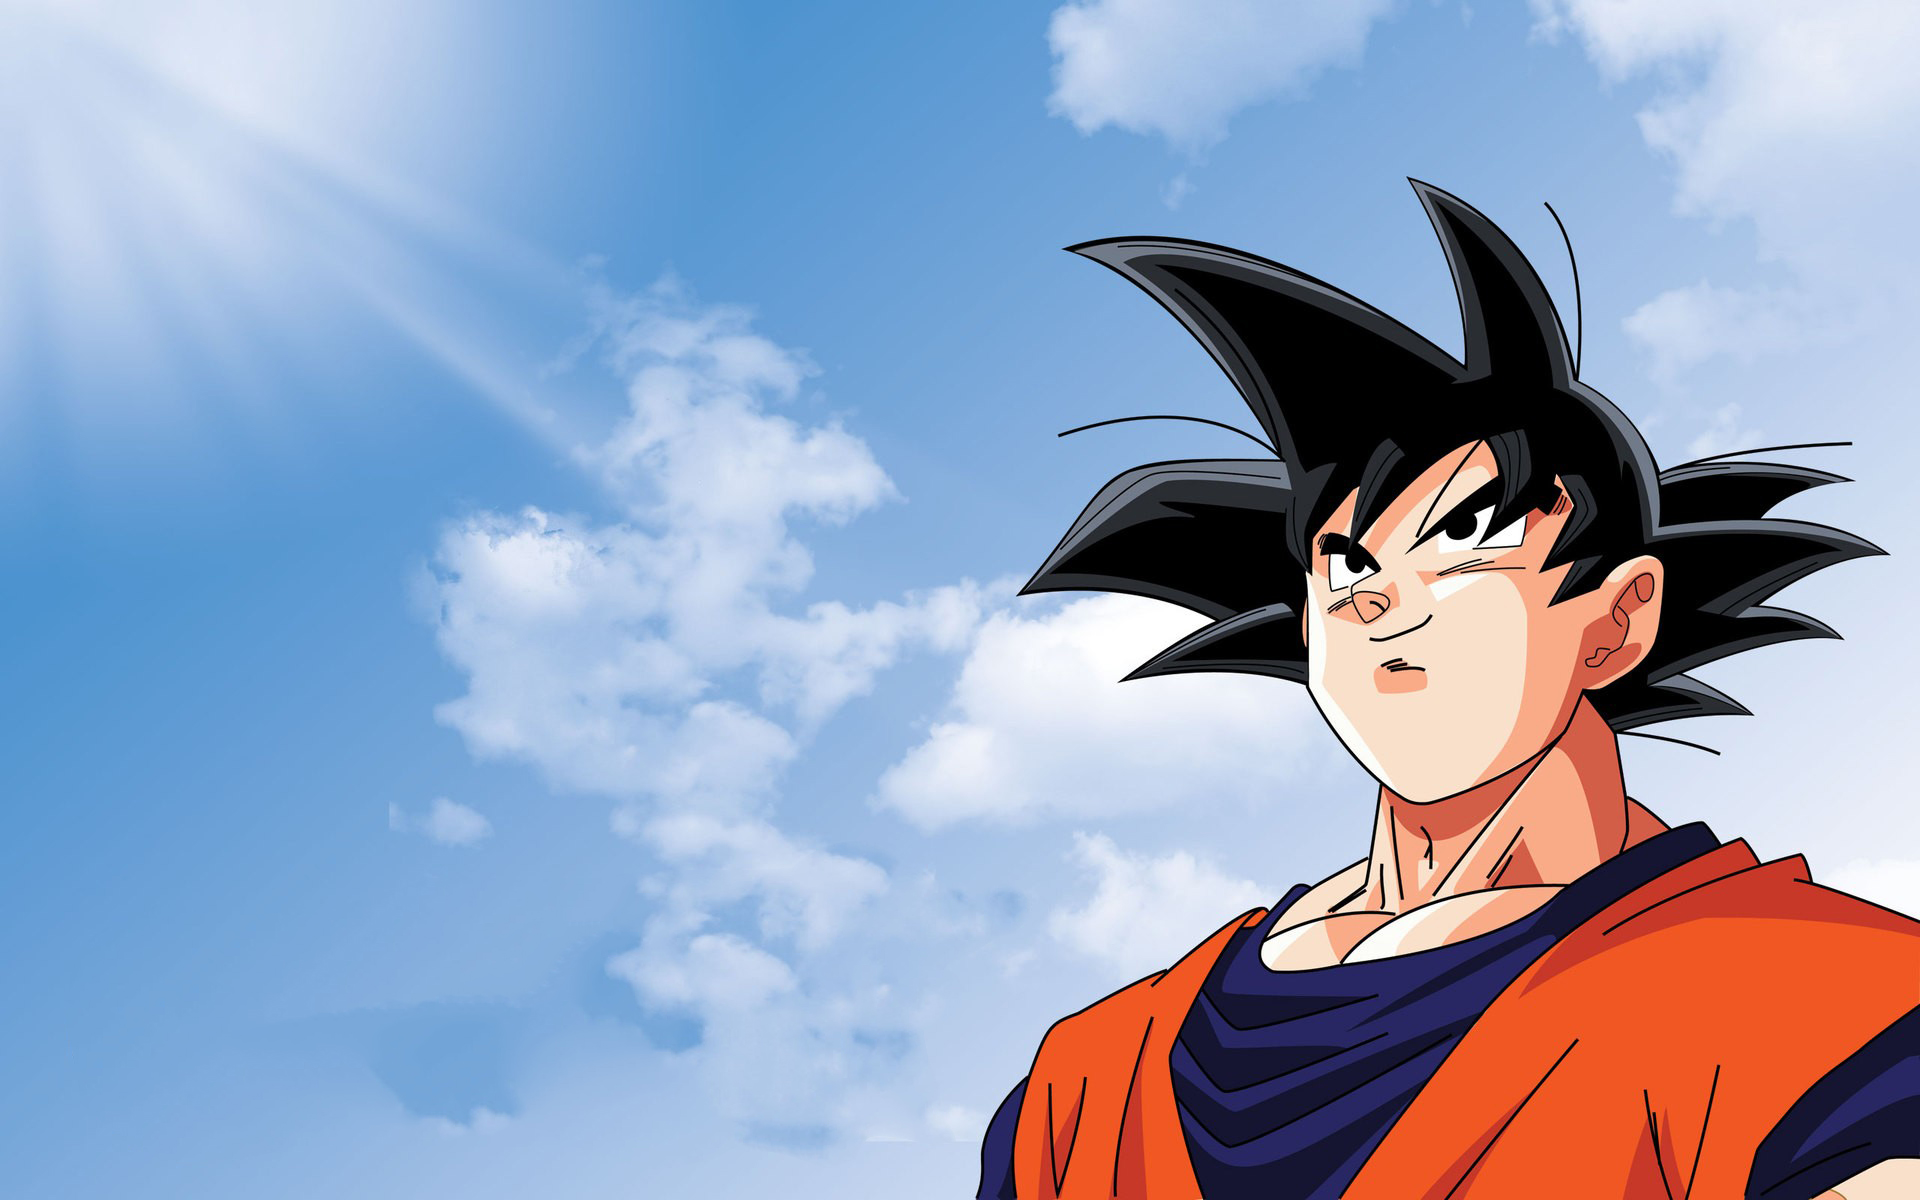 Goku hd wallpaper background image 1920x1200 id - Images dragon ball z ...